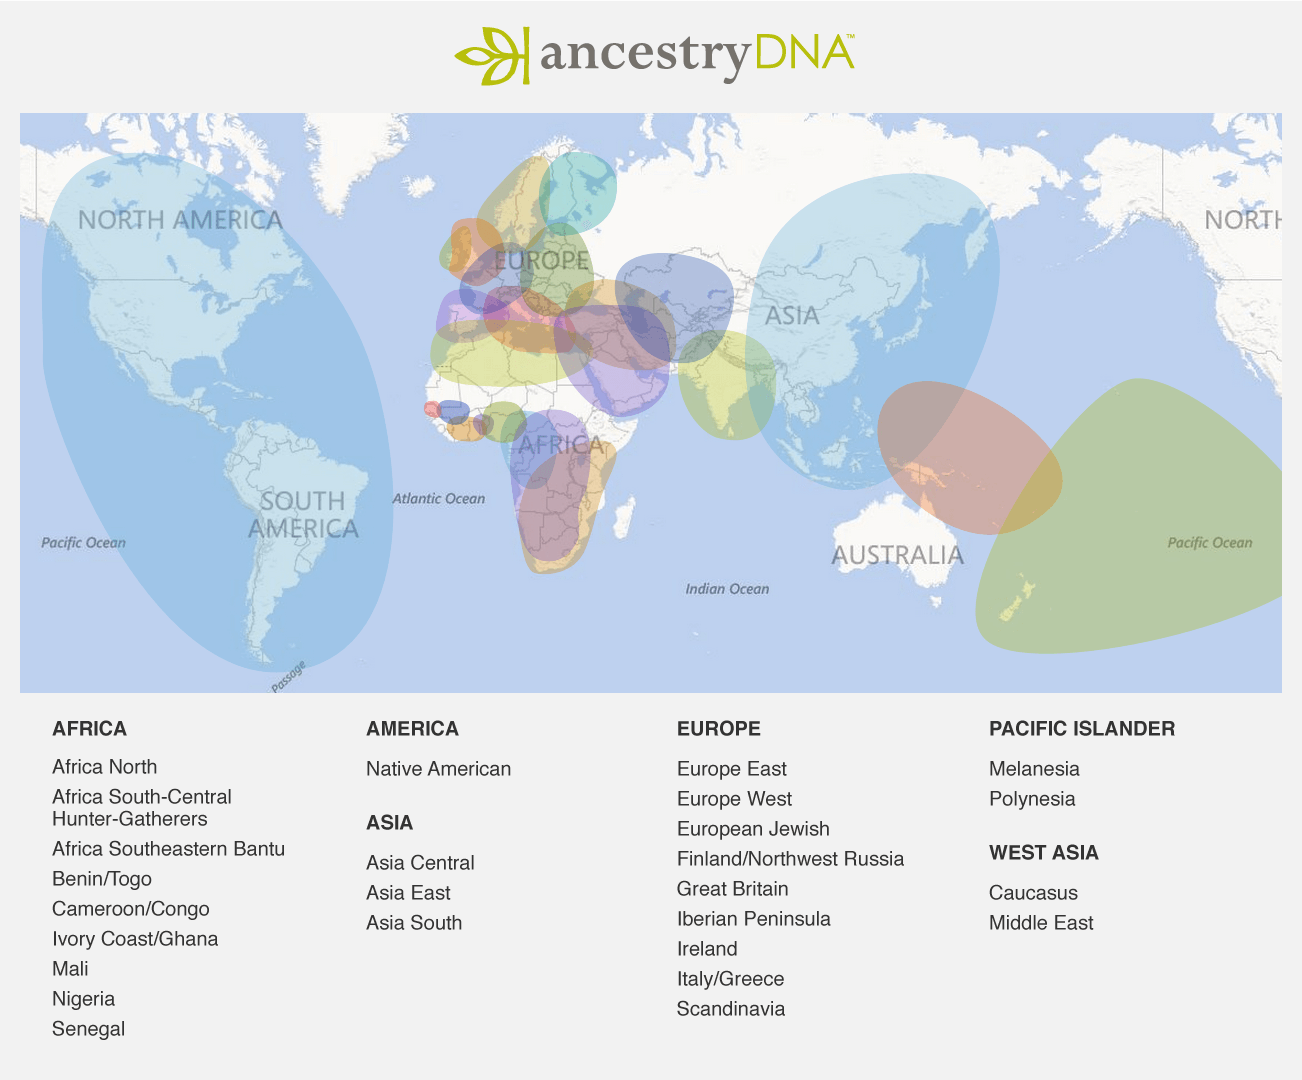 Ancestry Dna Map A Genetic Census of America – Ancestry Blog